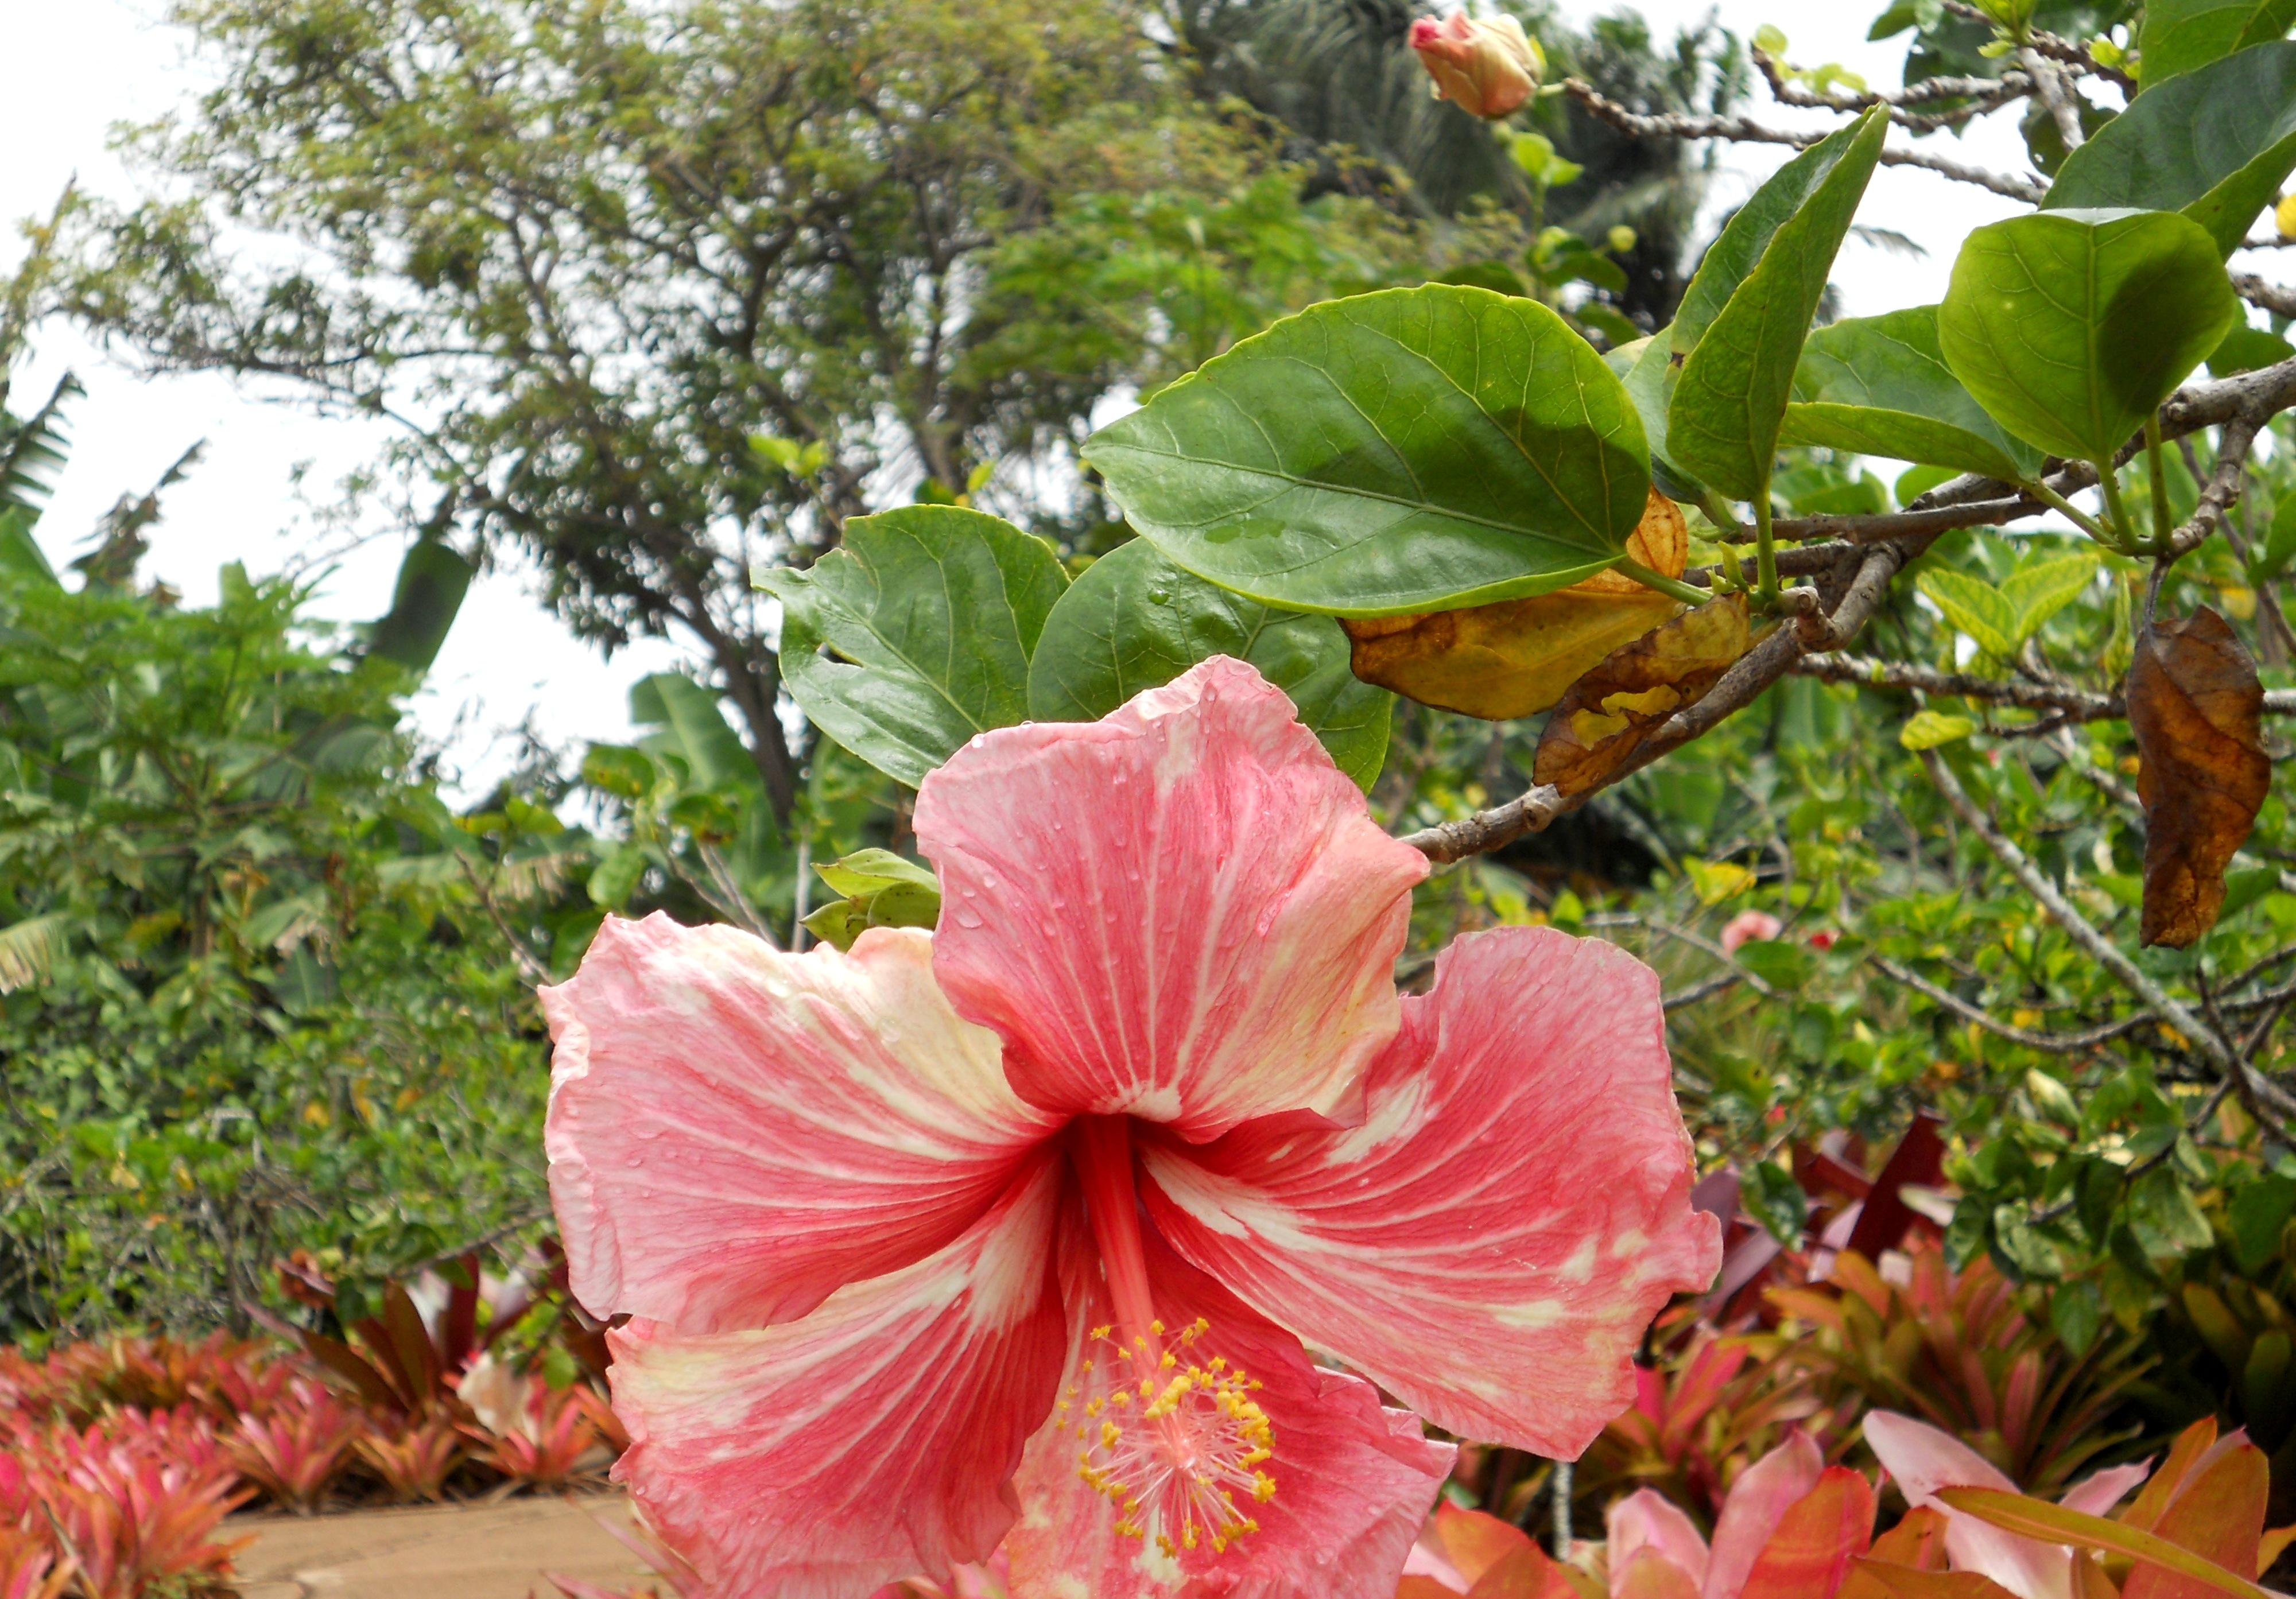 Flora and fauna in the hawaiian islands part 1 aarp online community this african native below has become a trademark of hawaii the bird of paradise with their orange and blue flowers nestle in green bracts looking somewhat izmirmasajfo Gallery